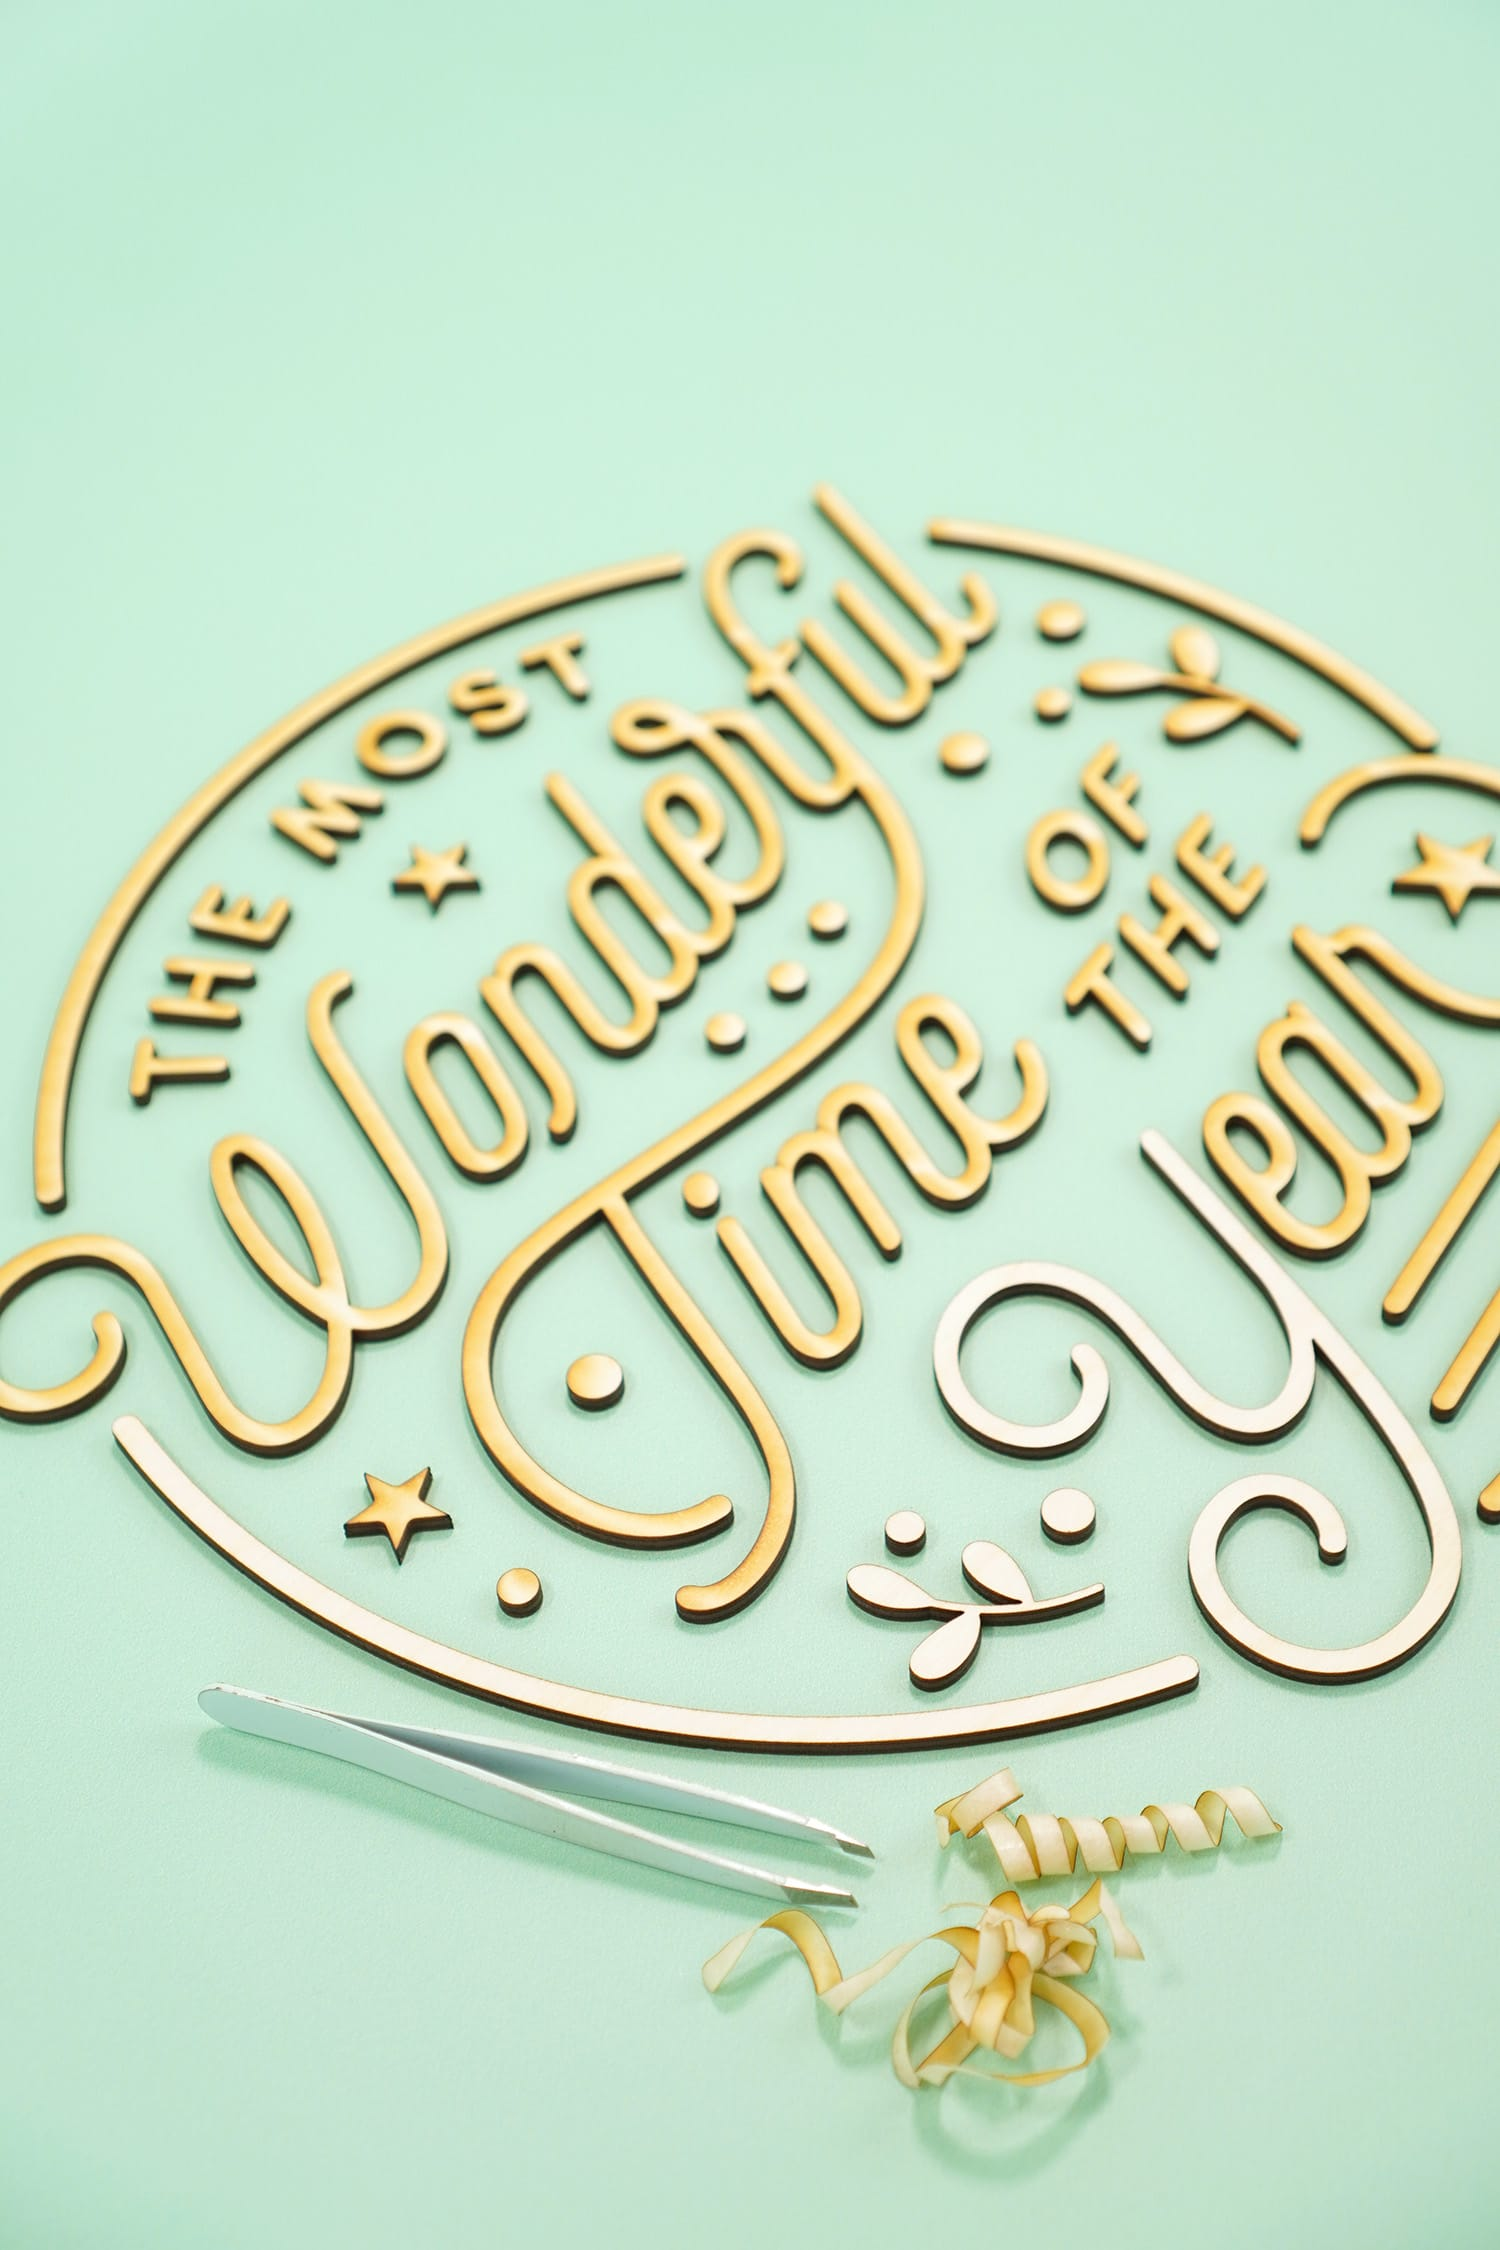 """The Most Wonderful Time of the Year' Laser Cut Wood Sign pieces with tweezers and pile of unmasked masking paper tape on mint green background"